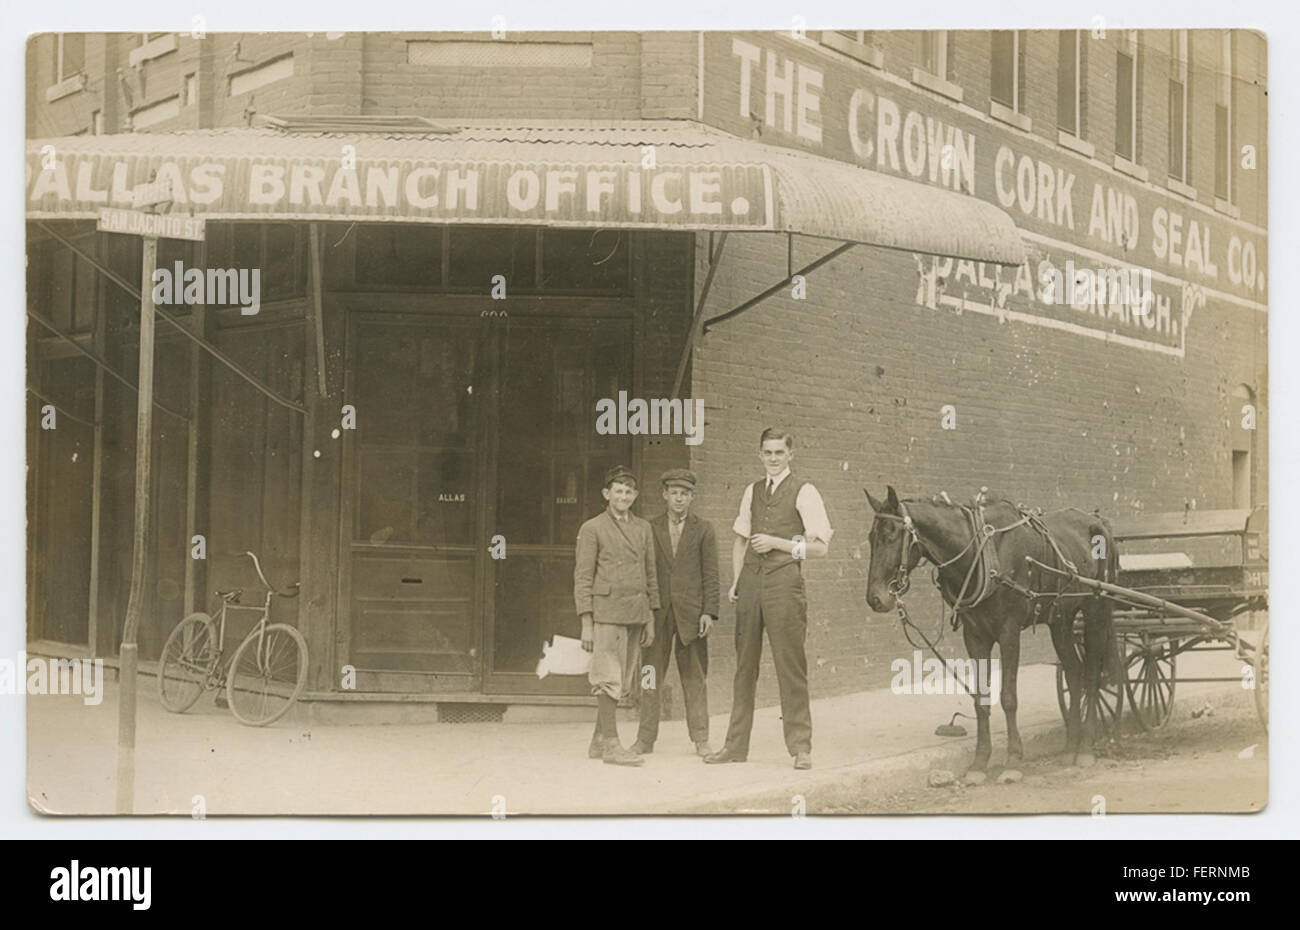 [The Crown Cork and Seal Co., Dallas Branch] [The Crown Cork and Seal Co, Dallas Branch] - Stock Image